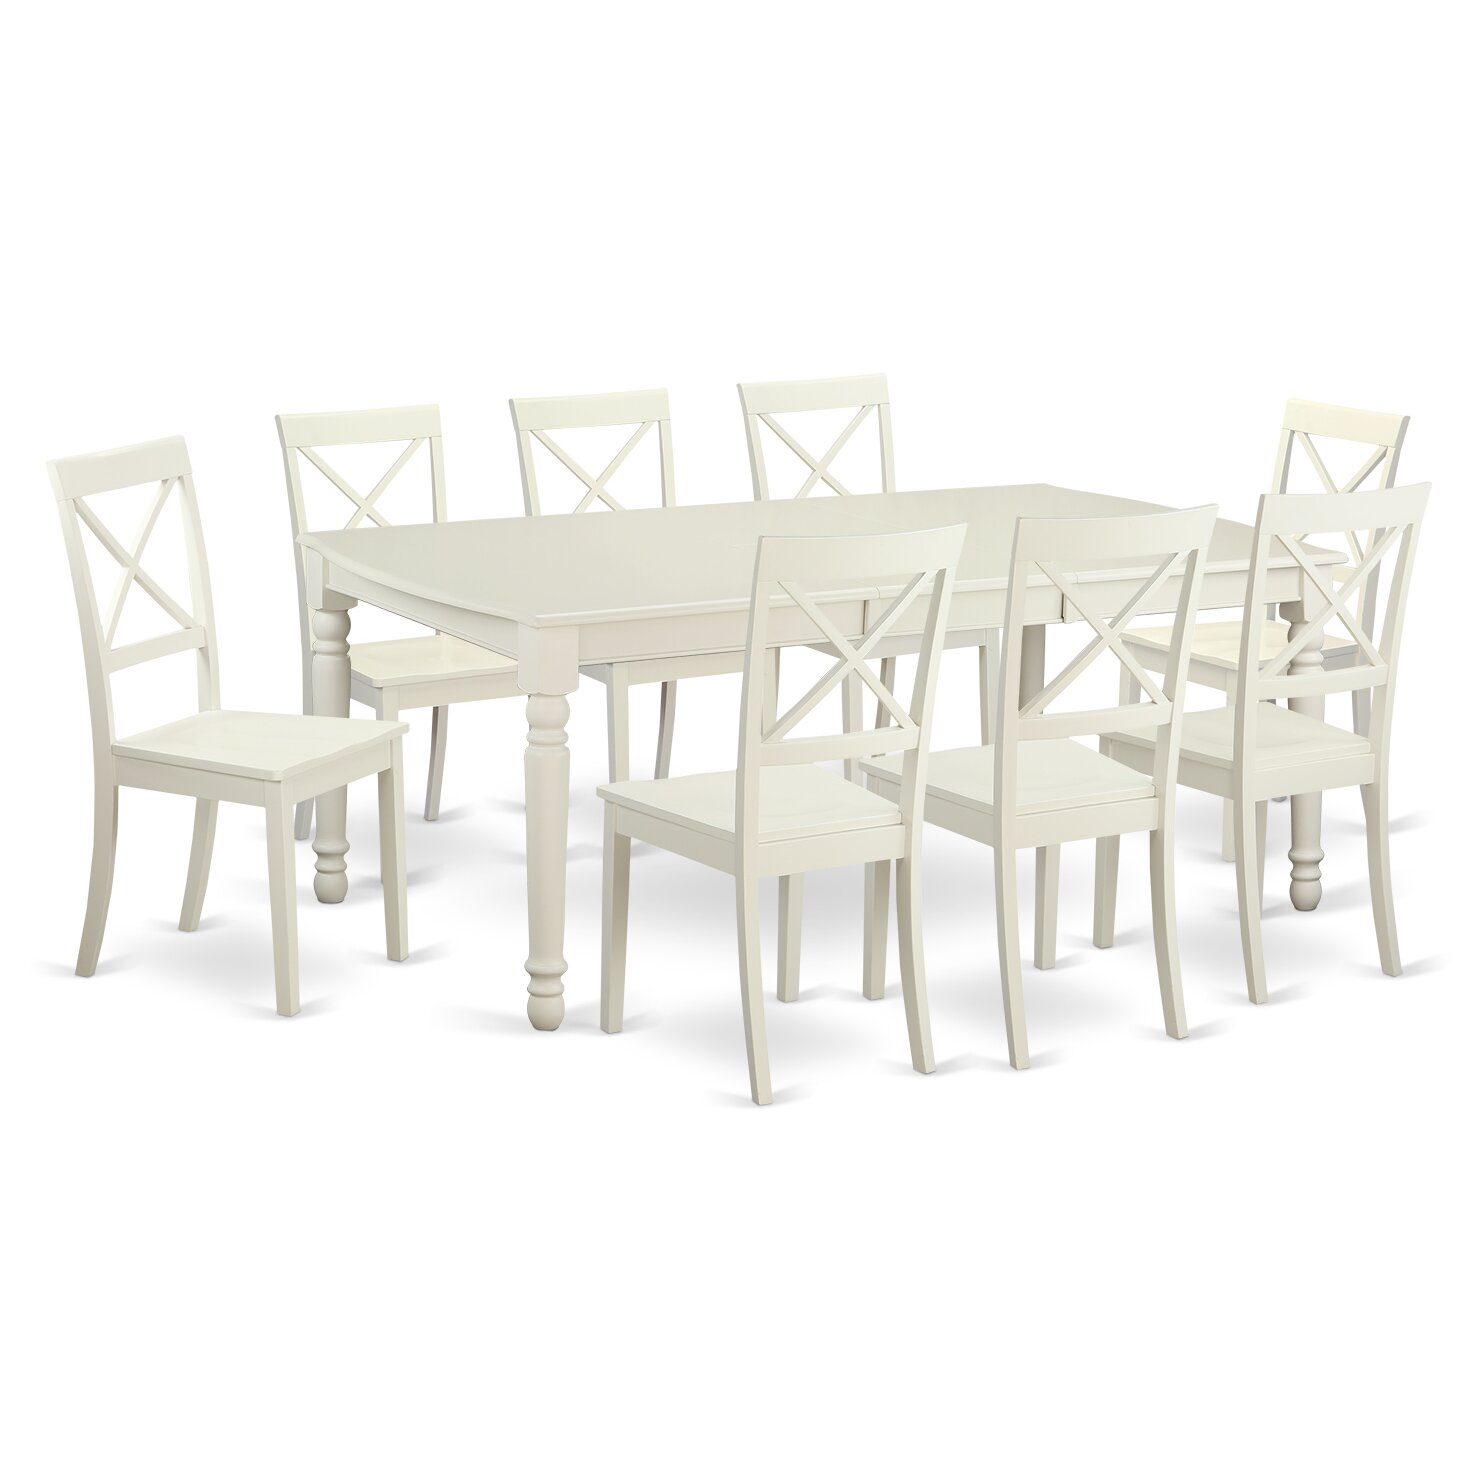 East west dover 9 piece dining set reviews wayfair for Dining room furniture 9 piece